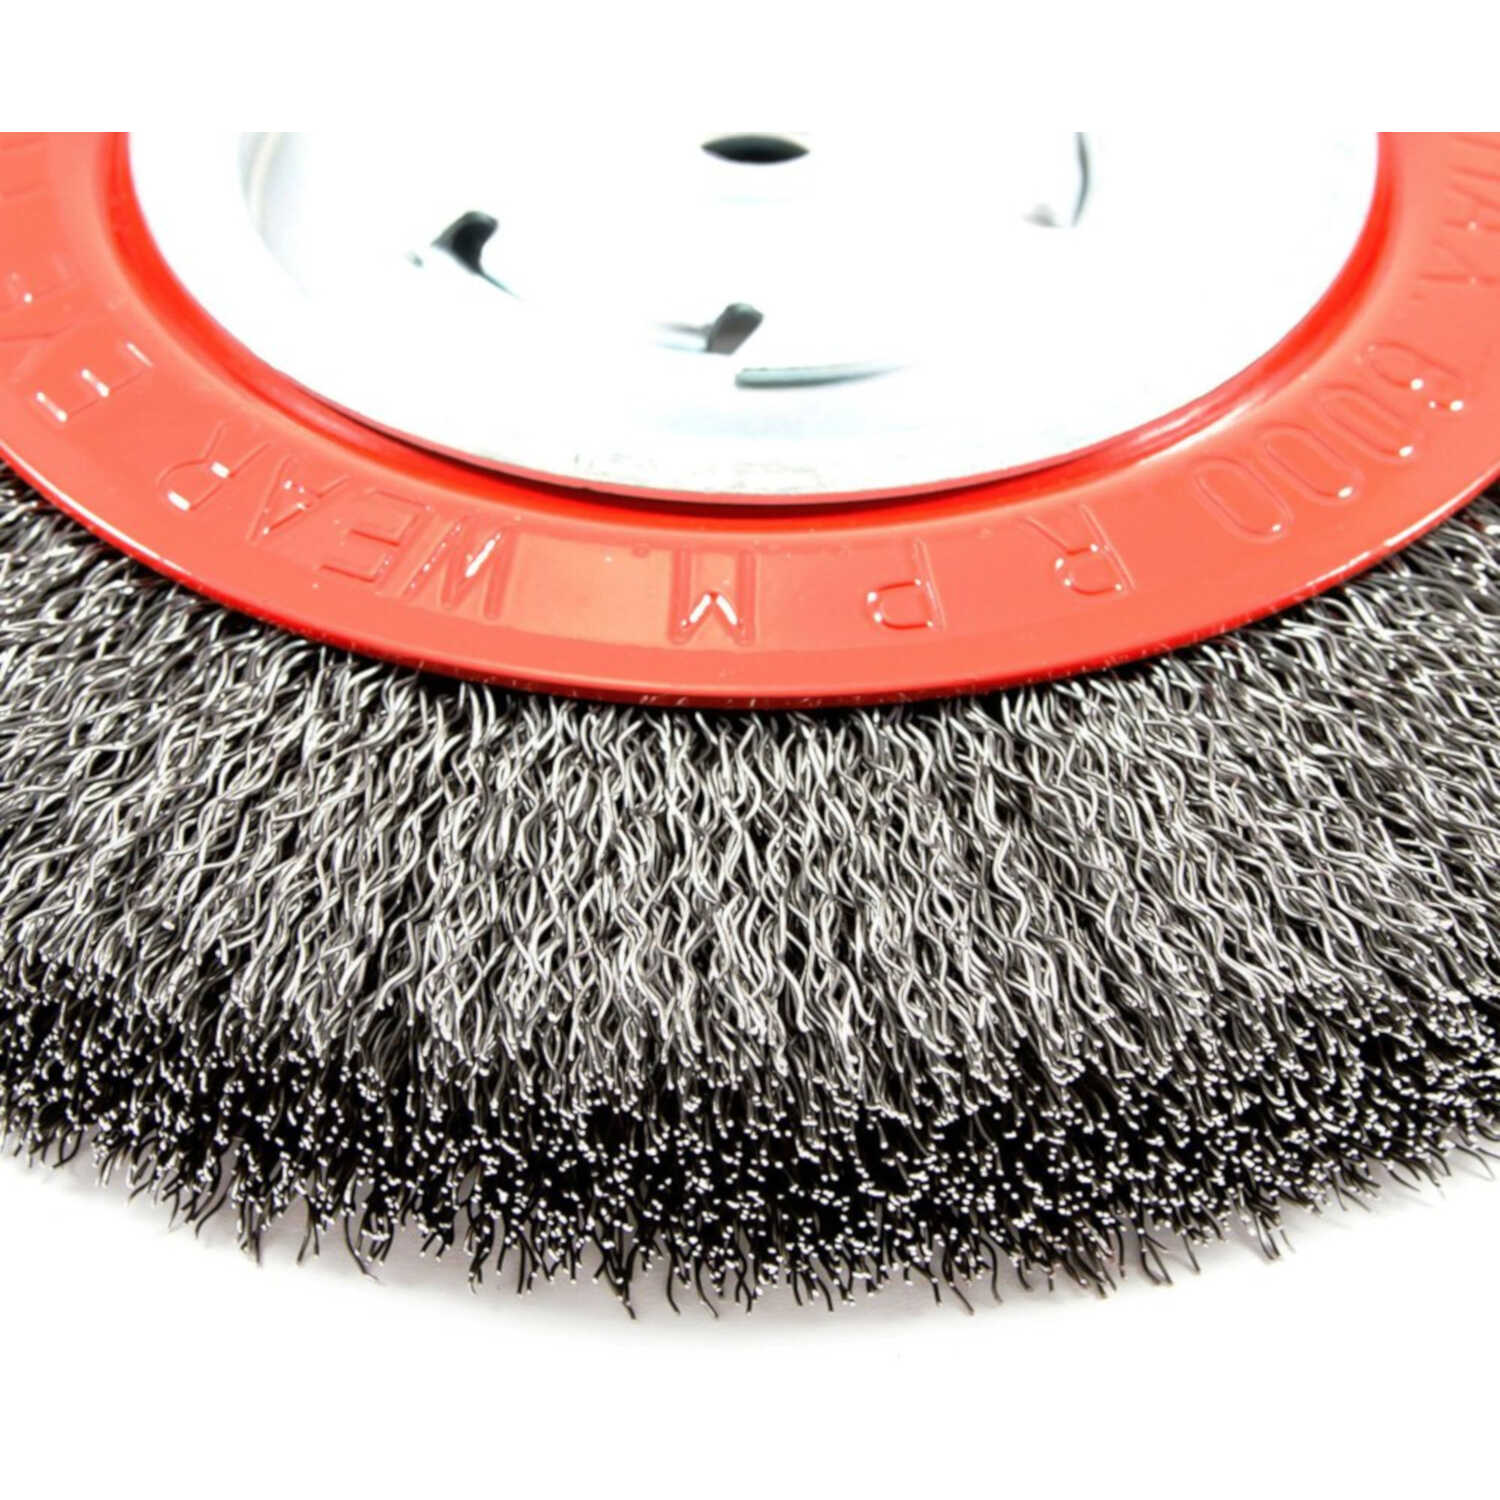 Forney  8 in. Crimped  Wire Wheel Brush  Metal  6000 rpm 1 pc.